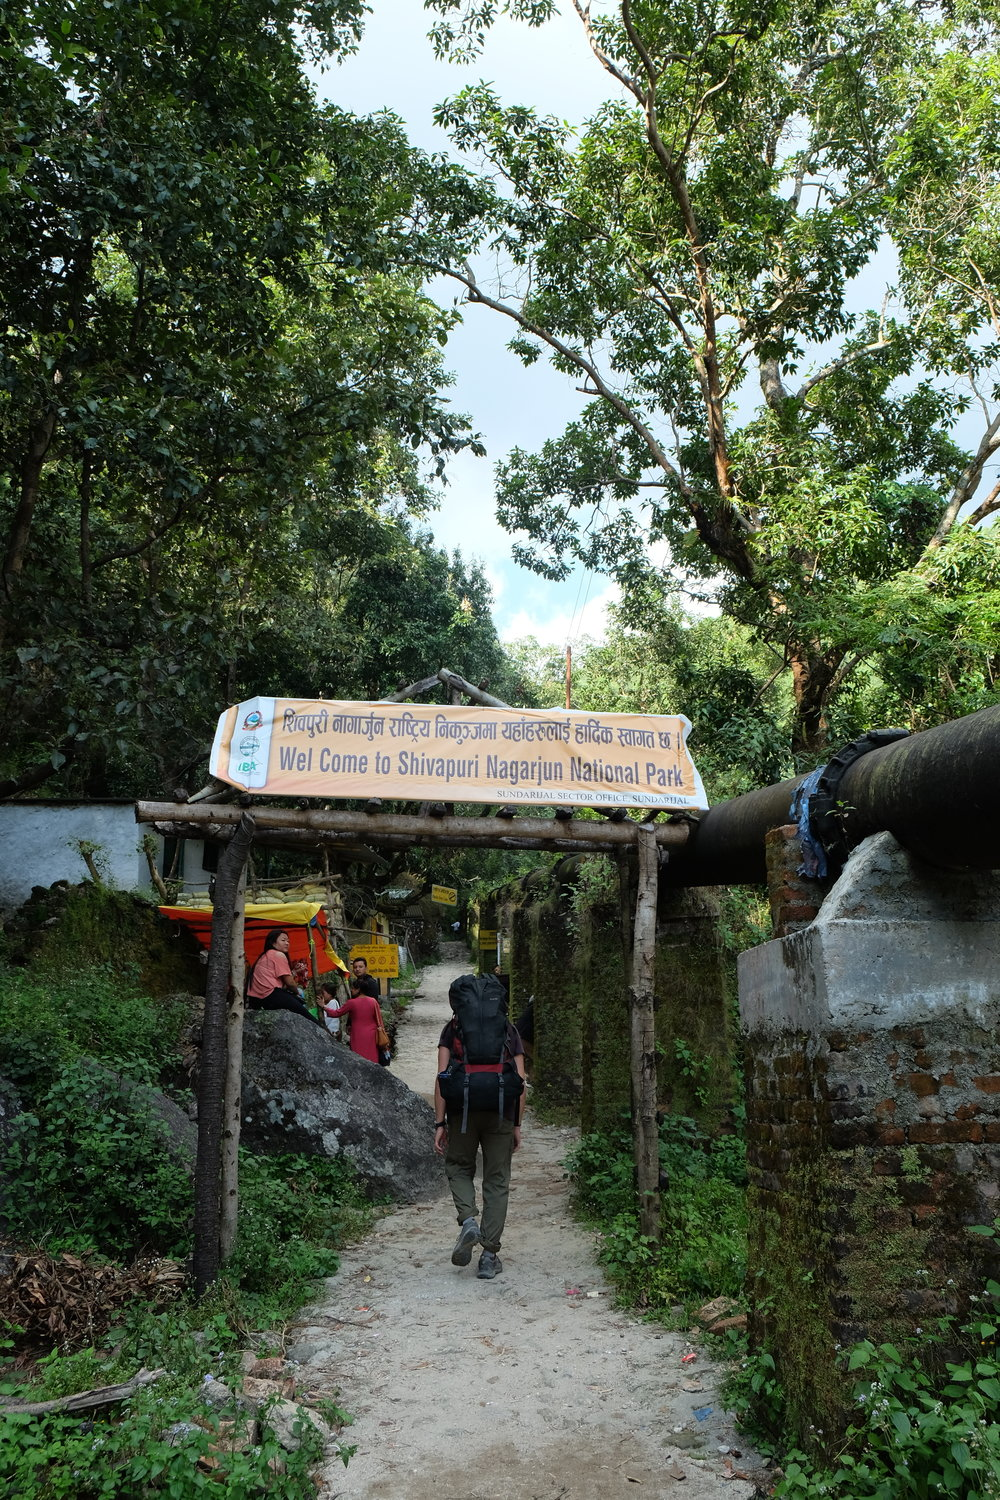 Entering Shivapuri